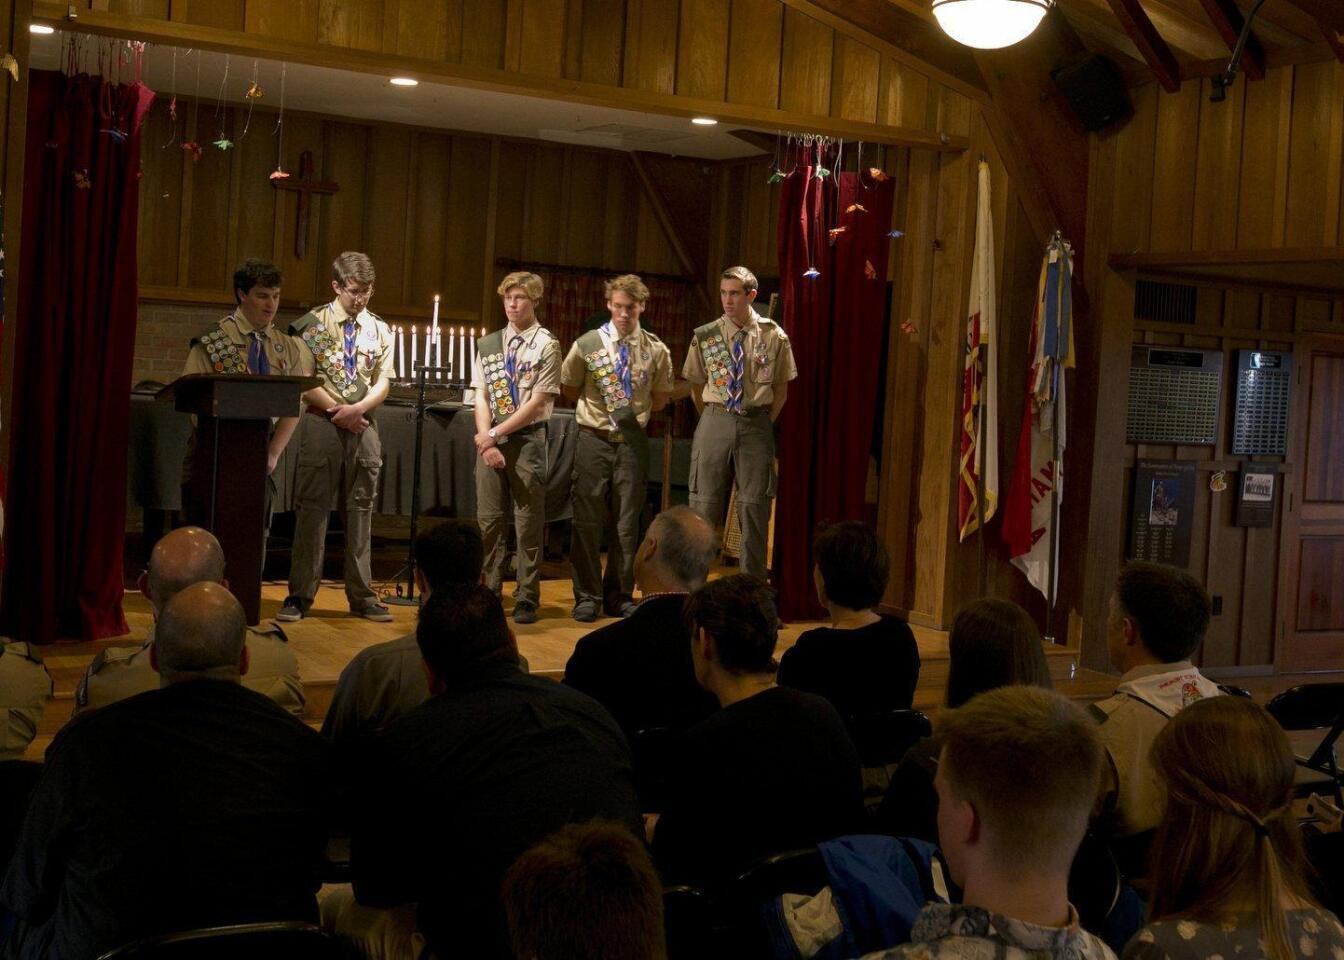 Eagle Scouts: Jimmy Neil, Matthew Elwell, Christopher Shopes, Jon Shopes, and Nicholas Moglia remember their mentor Peter Gillcrist